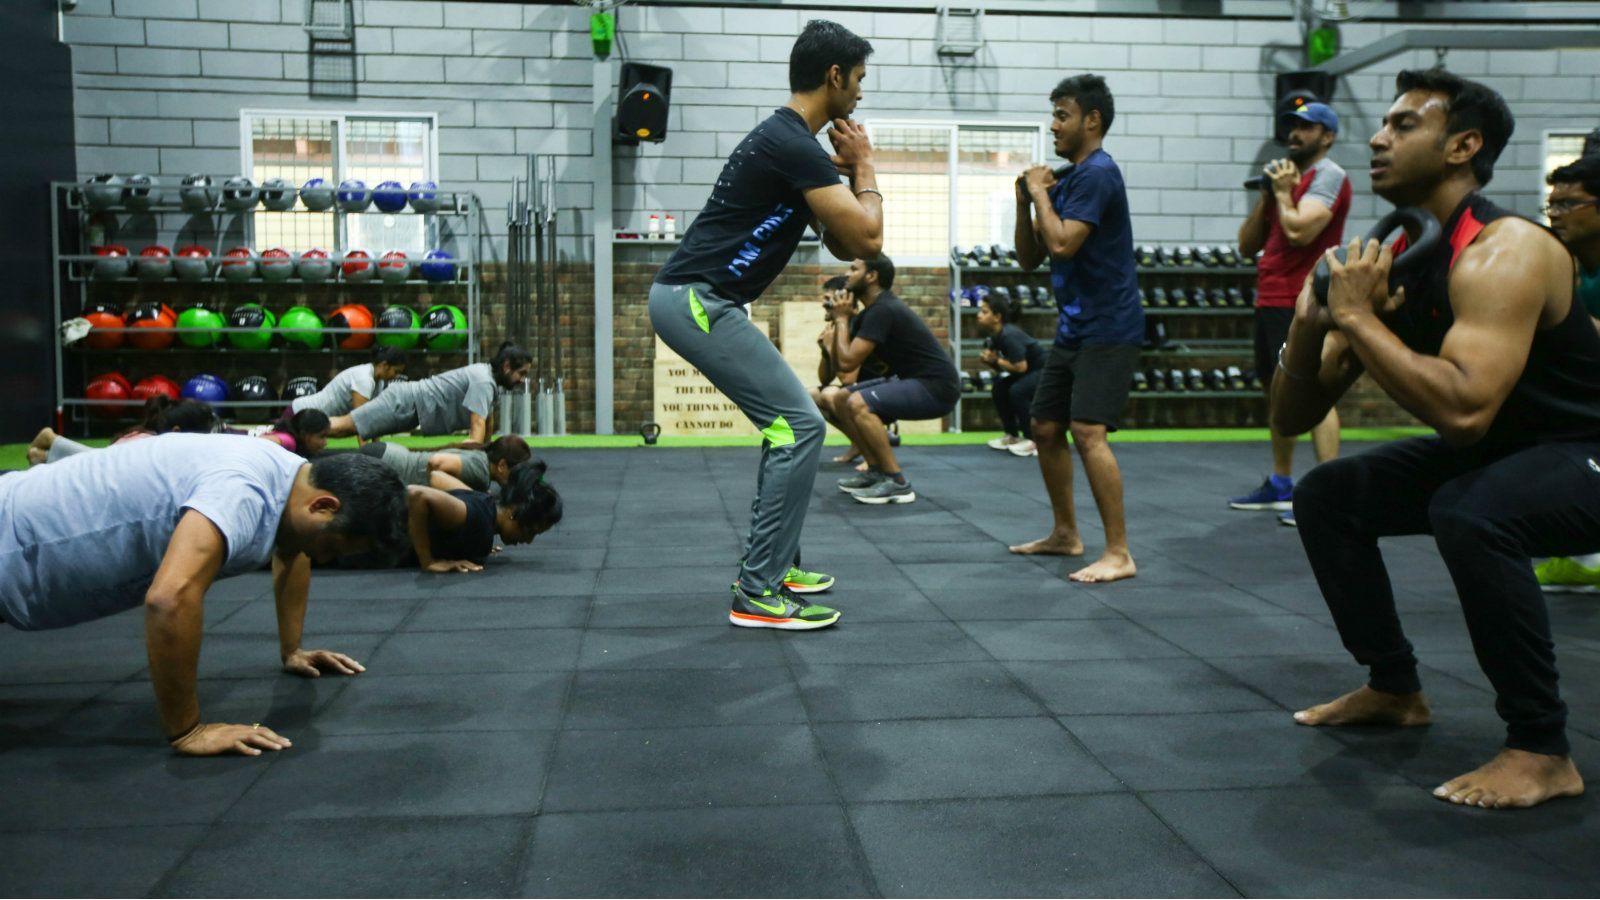 Indian MMA: CureFit aka Cult stops MMA classes, members stage protest - CureFit